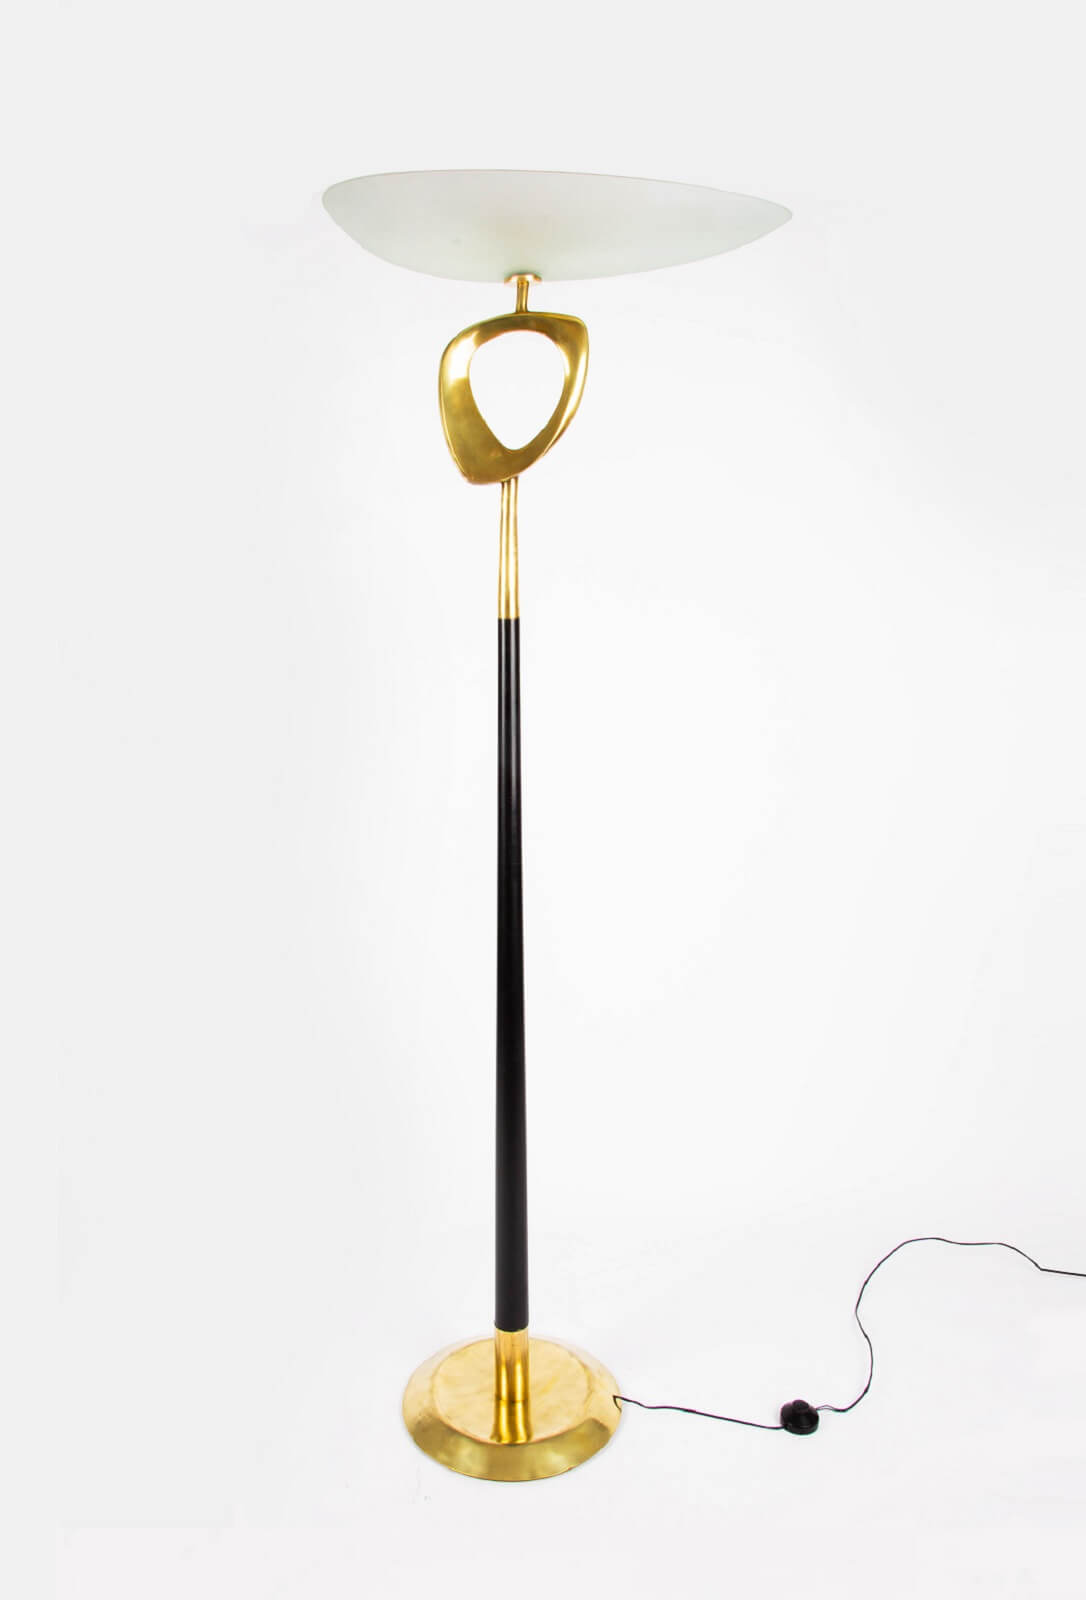 Floor lamp by Max Ingrand for sale